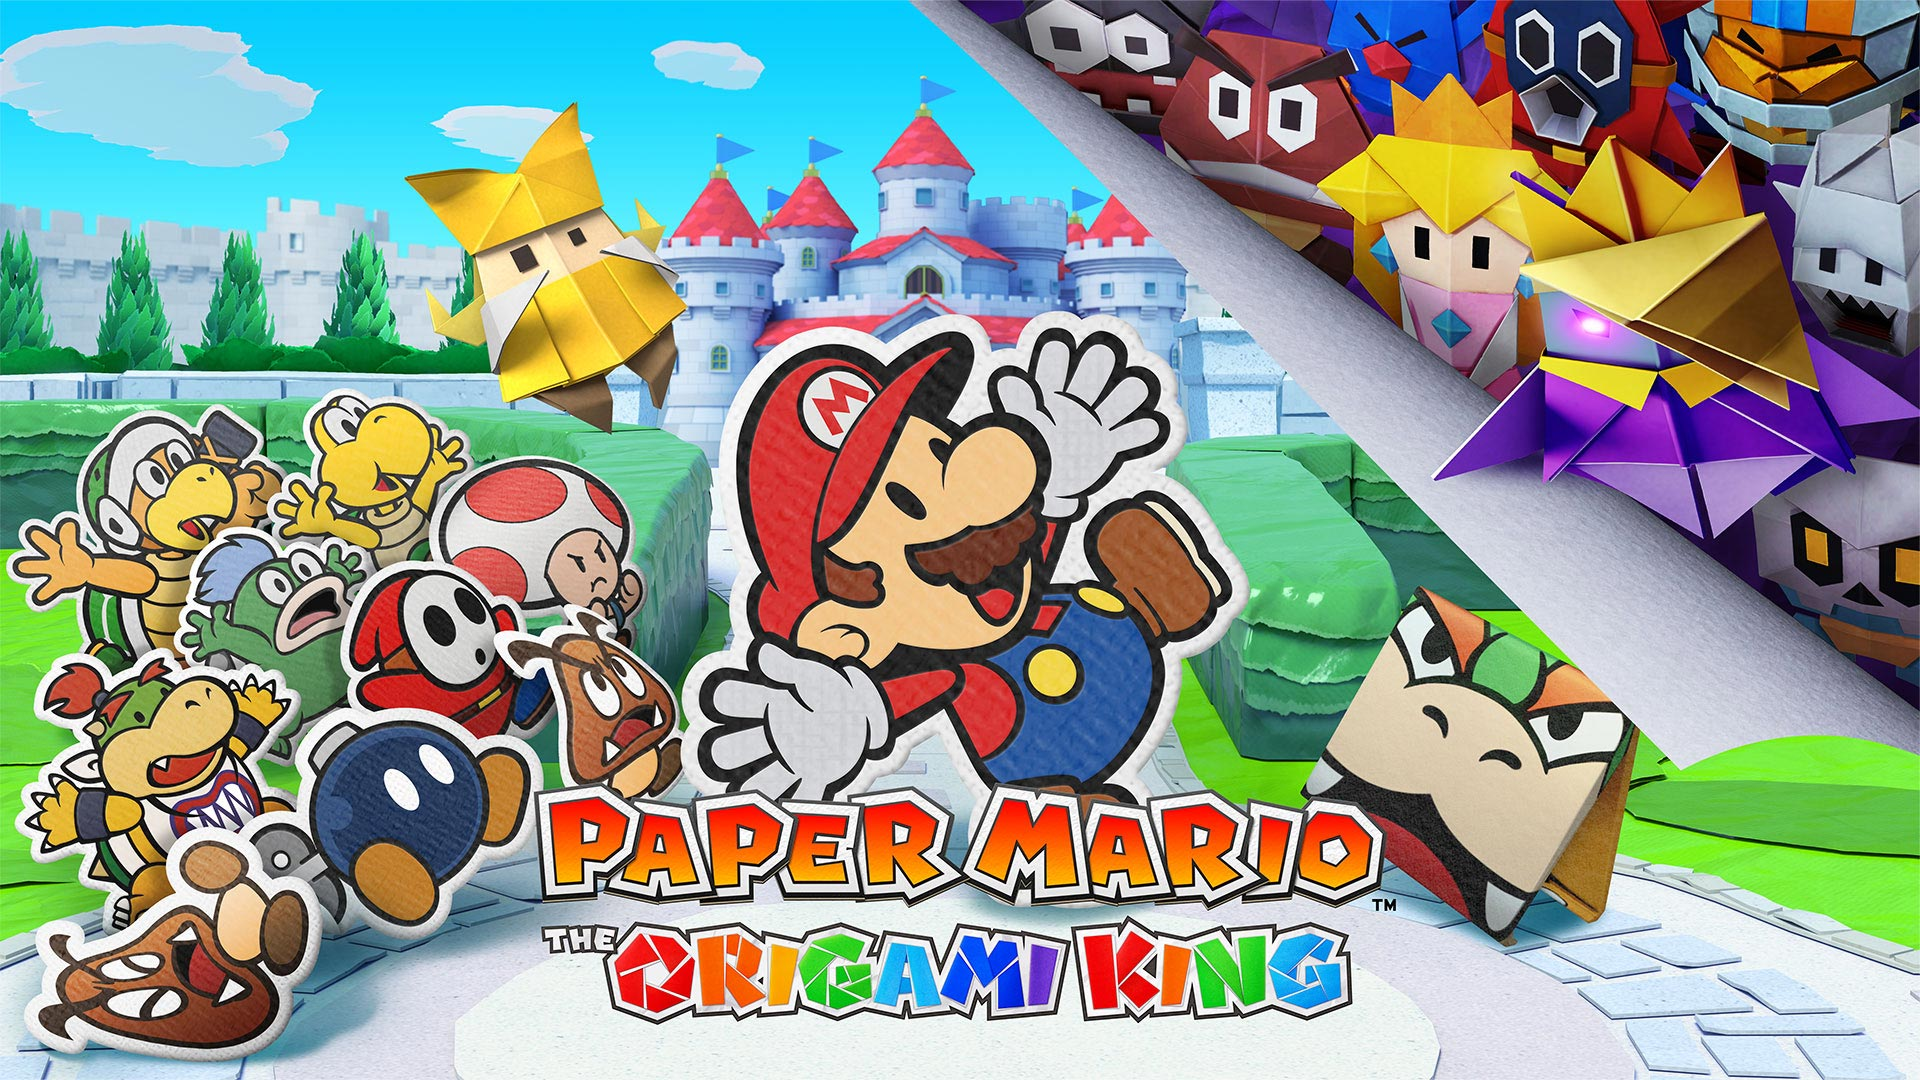 Paper Mario: The Origami King update and Updates